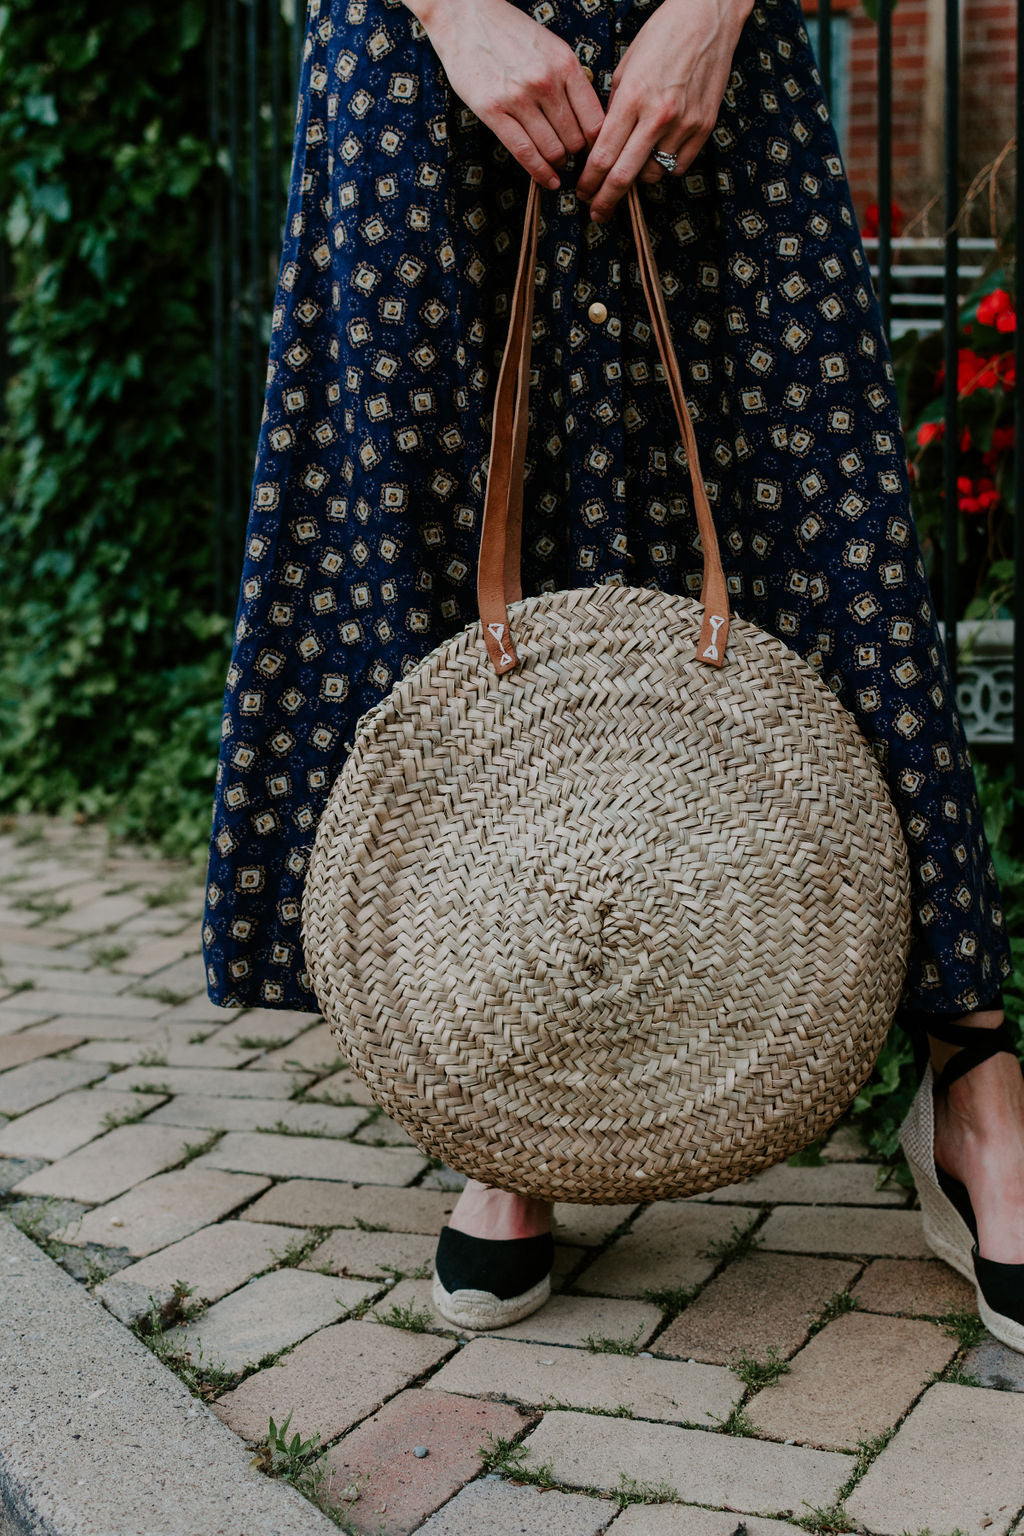 The Round Summer Basket